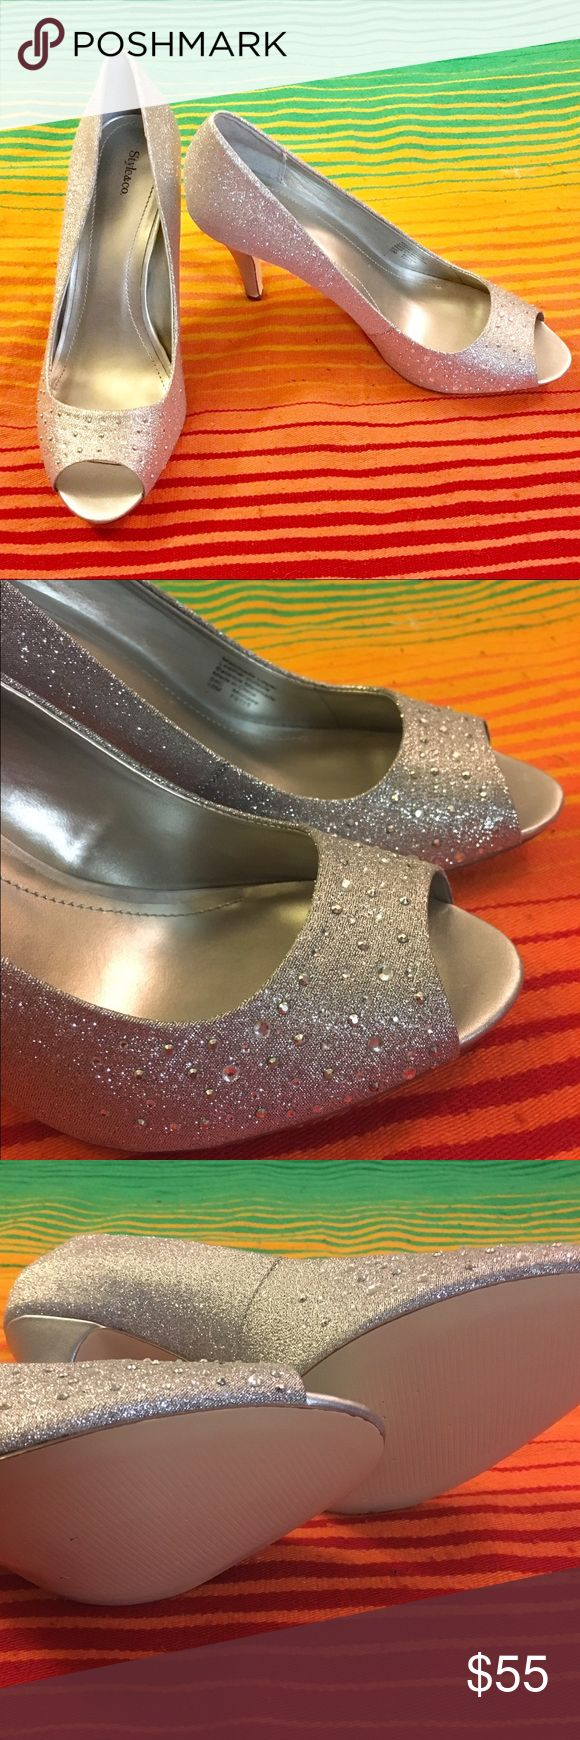 NWOT Silver sparkly pumps, size 10 NWOT Style & Co. Silver sparkly Monaee style pumps, size 10. Never worn. Bought to wear to my wedding and decided on something else. Gorgeous pumps with 3.5 inch heel and sparkly/jewel design. Perfect for a wedding, prom, or a fun night out on the town. Style & Co Shoes Heels